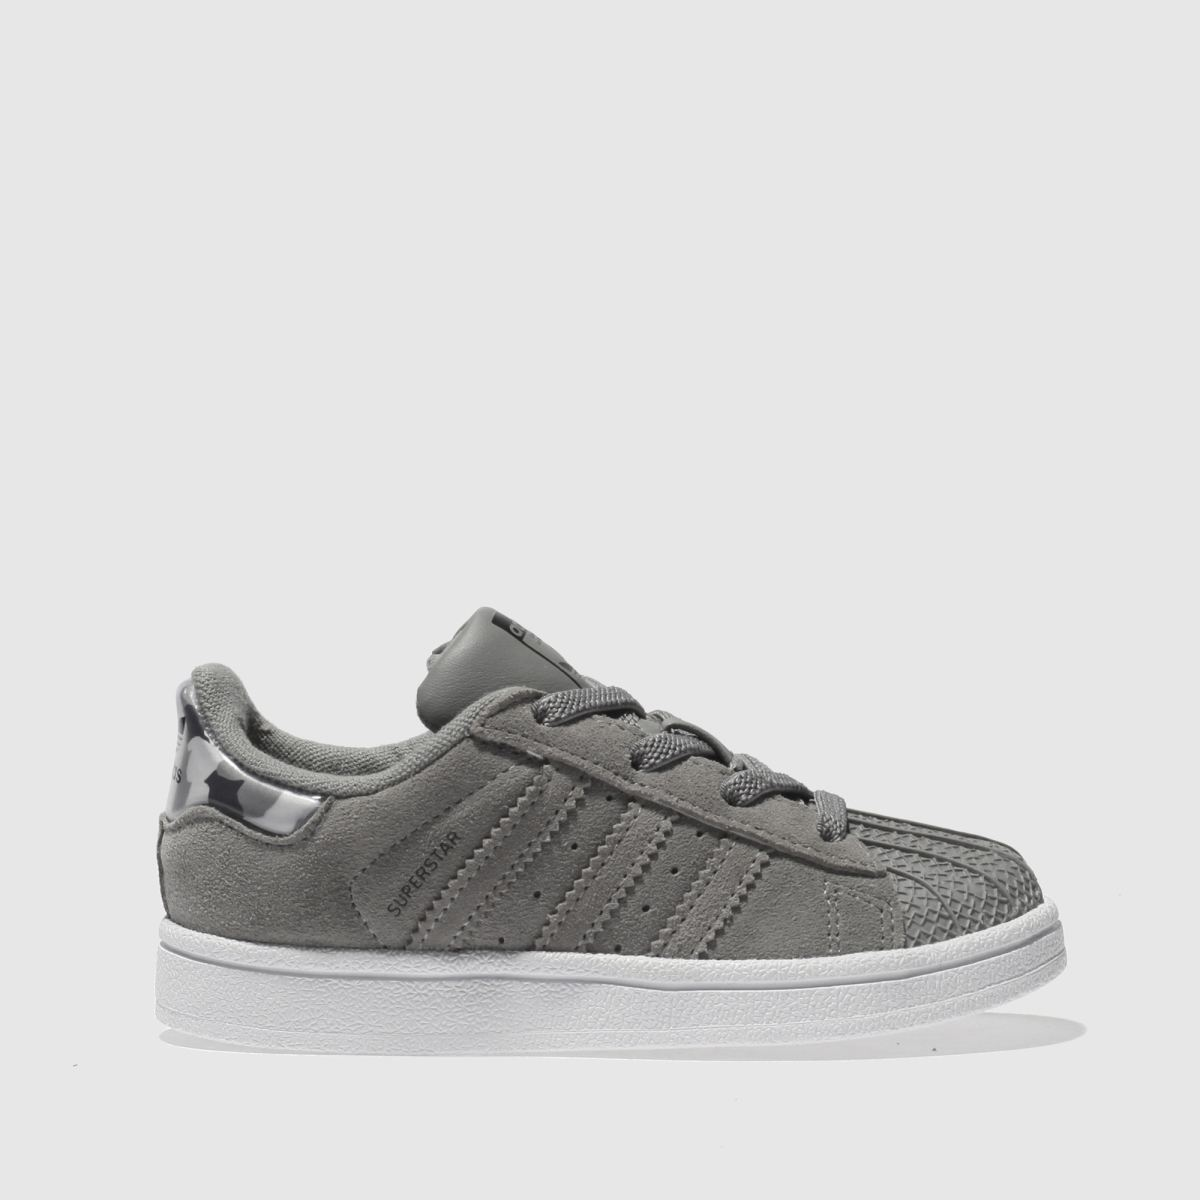 Adidas Grey Superstar Trainers Toddler